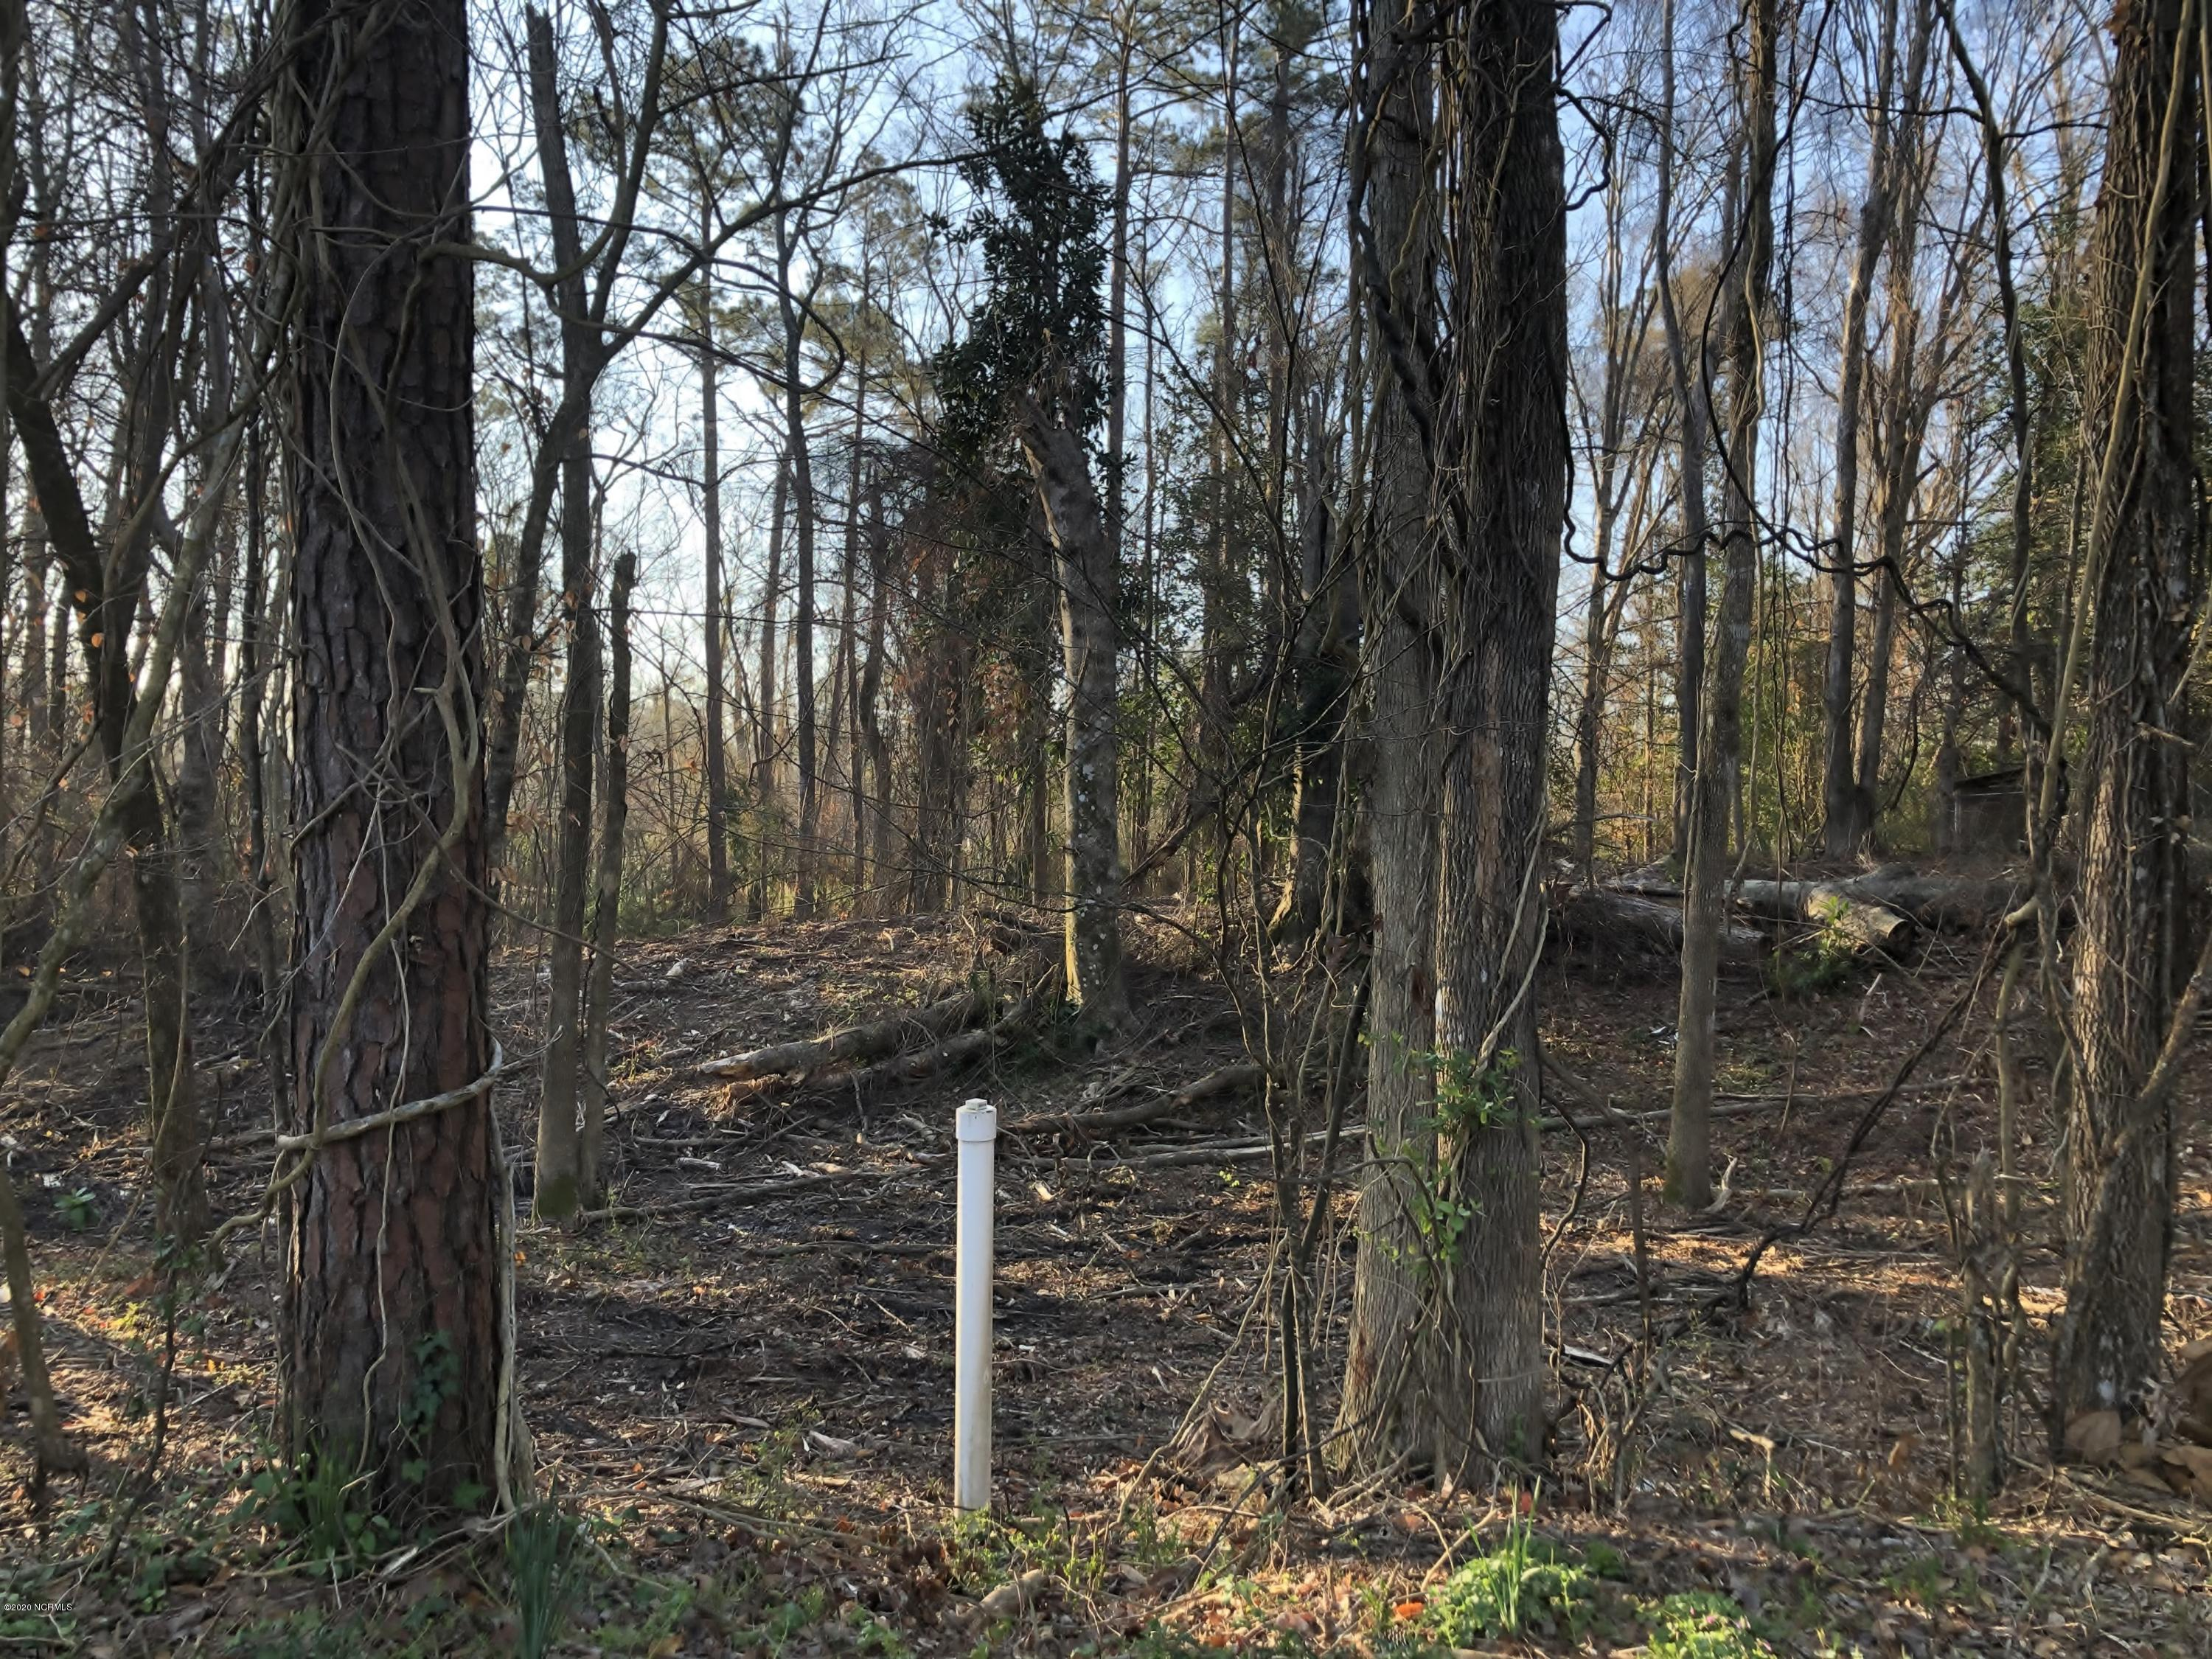 Residential building lot for sale in the established neighborhood of Country Club Acres.  Beautiful neighborhood with mature trees and close to all that Jacksonville has to offer.  Call for more information today on this 1.2 +- acre lot!